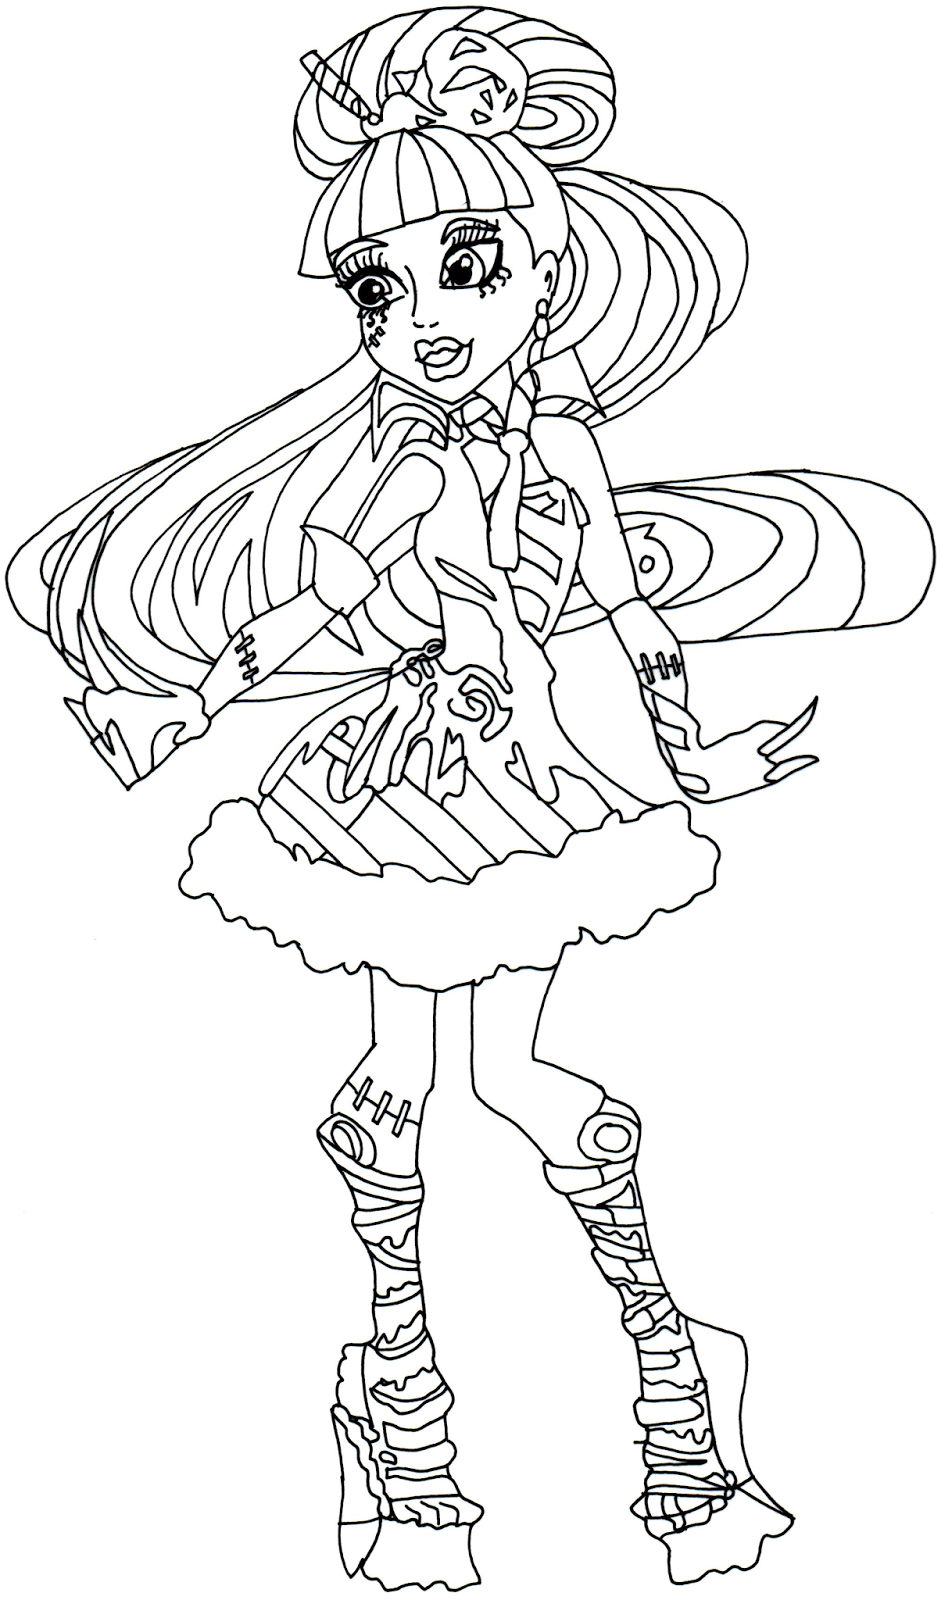 Sweet 1600 coloring pages download